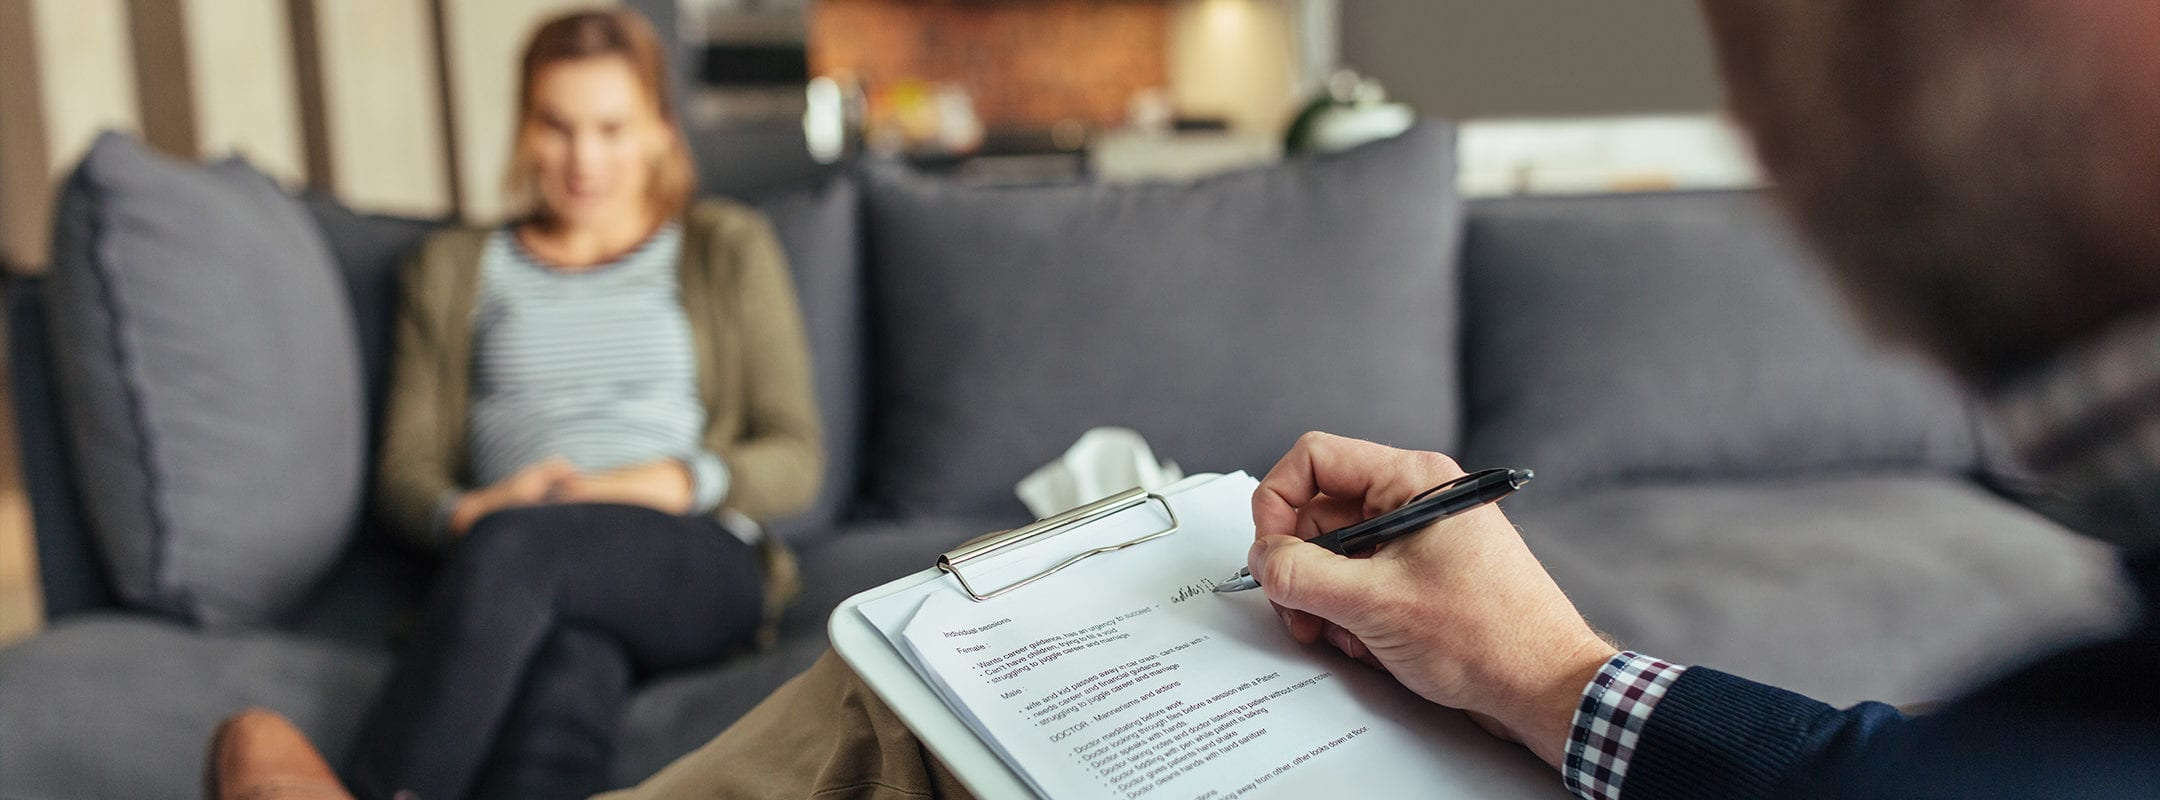 Psychologist taking down notes during therapy session with female patient. Psychotherapist with clipboard and woman patient sitting in background.